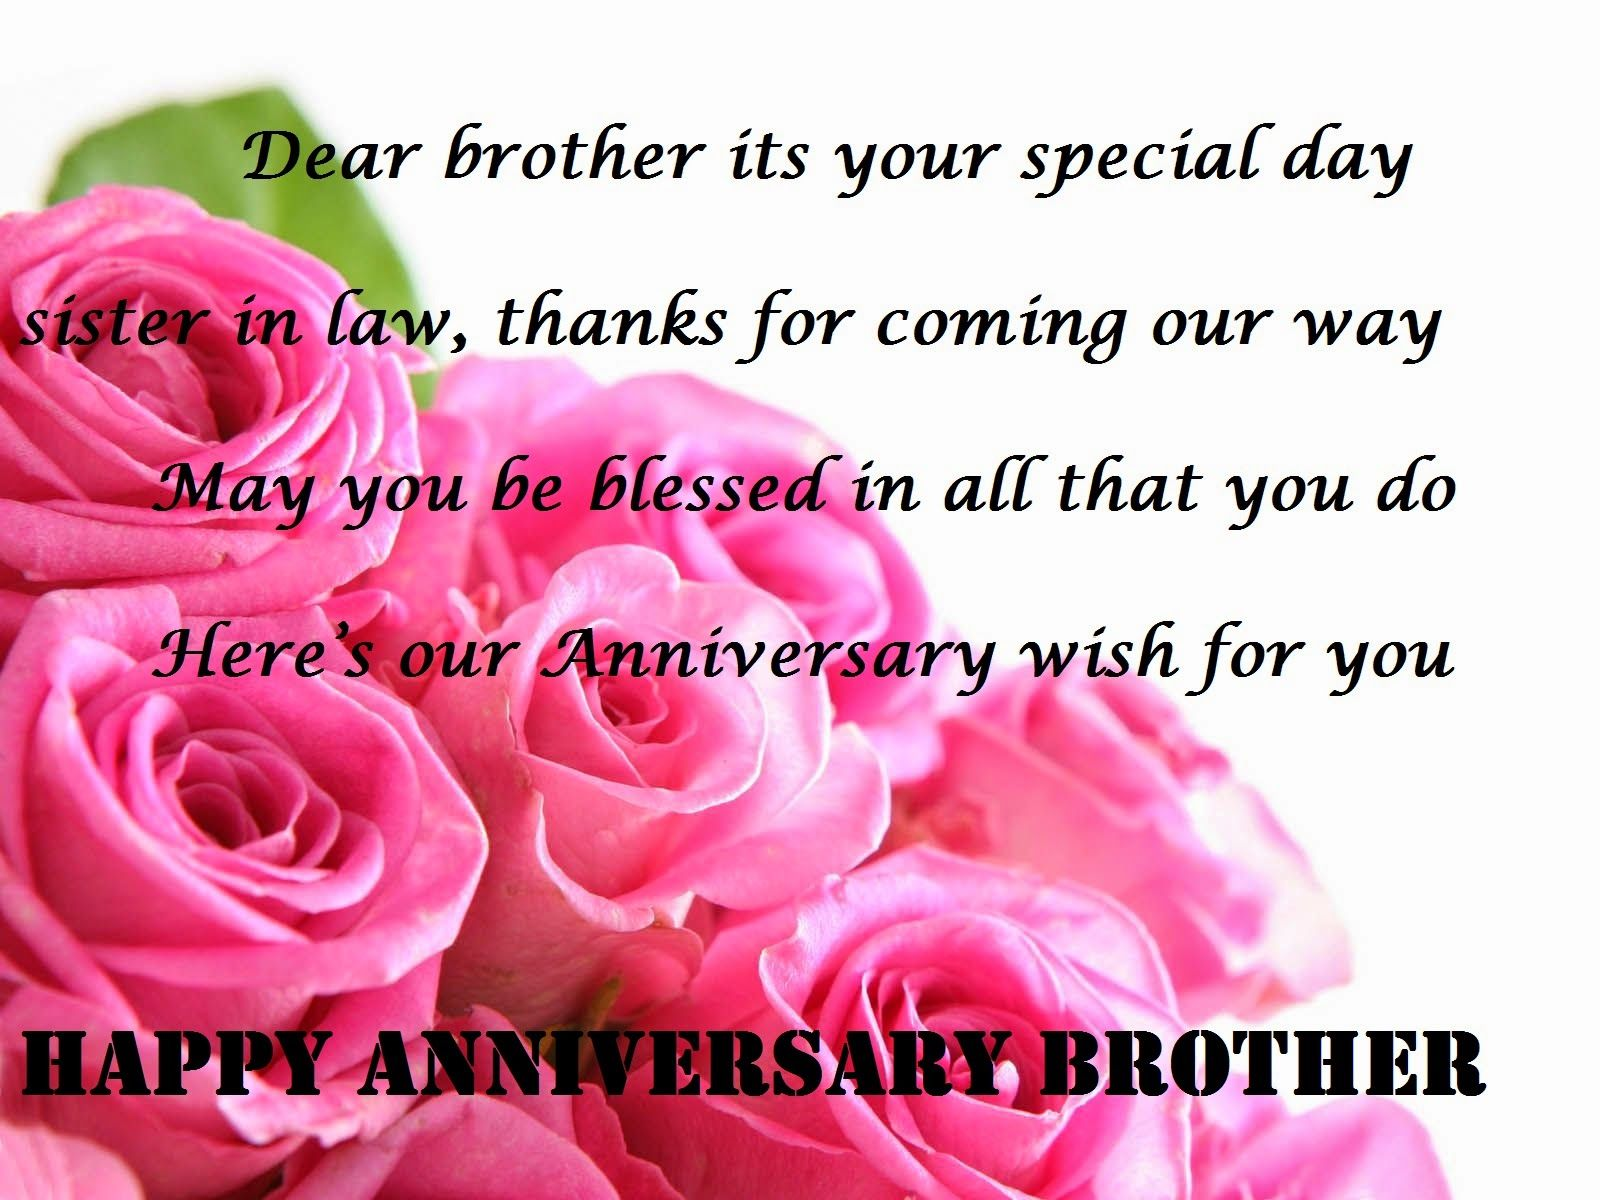 Happy Anniversary wishes for Brother and sister in law